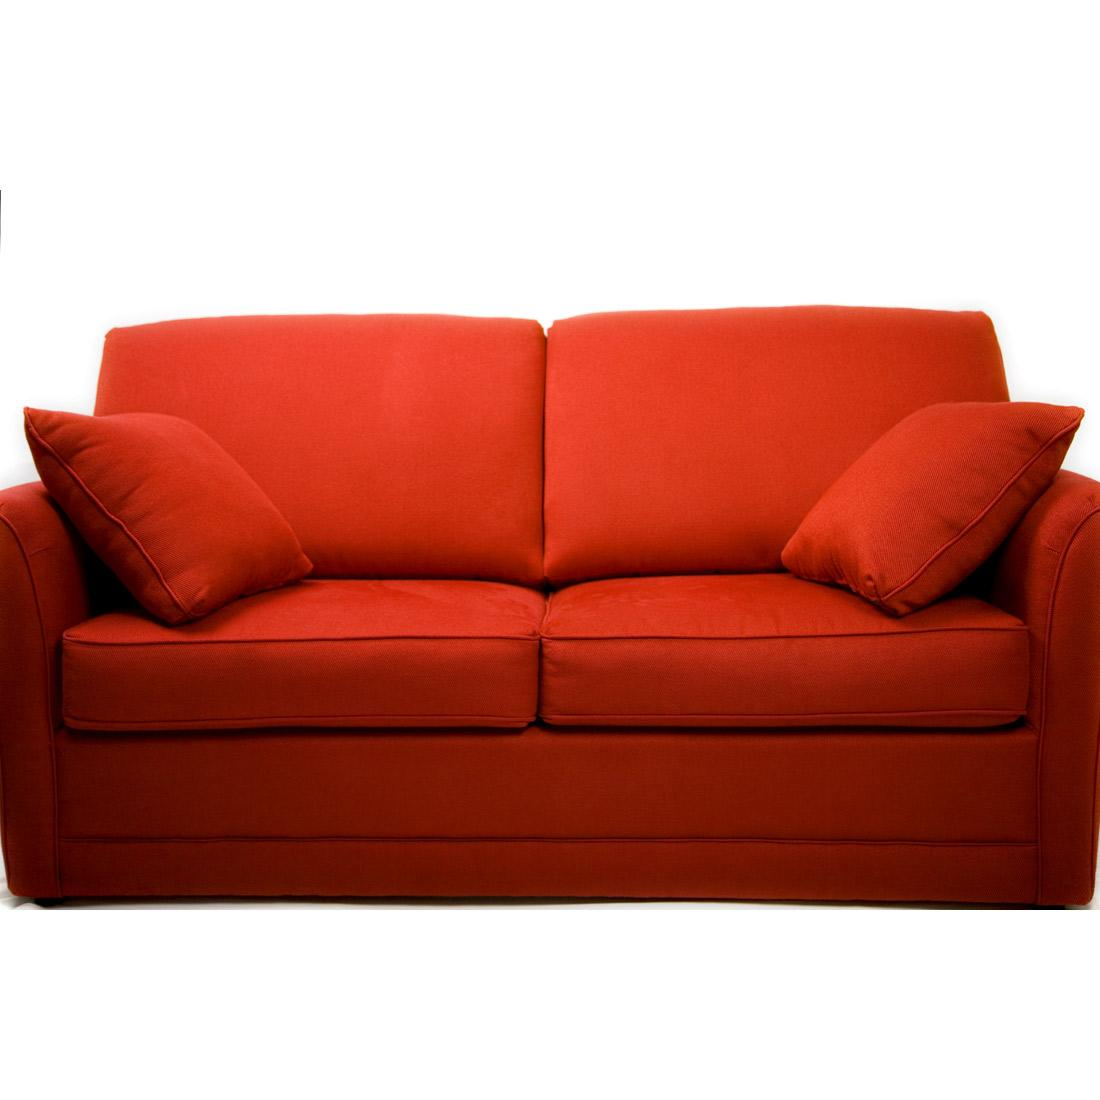 osler s razor june 2010 20 couch ideas to style your home